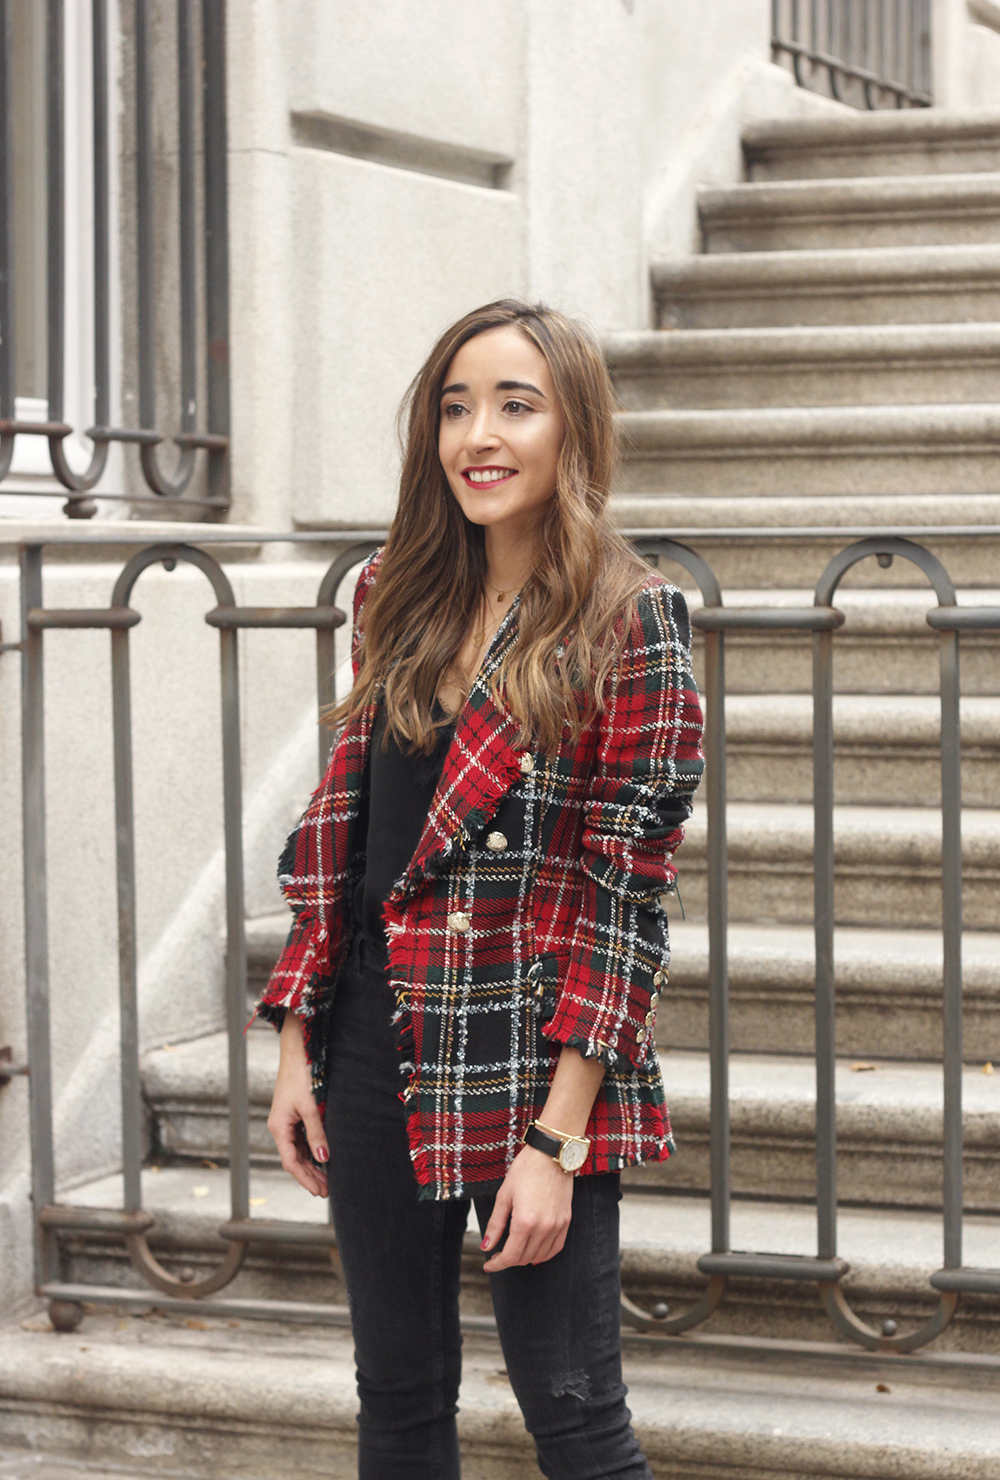 Tartan blazer black outfit heels givenchy bag street style fall outfit 20184159